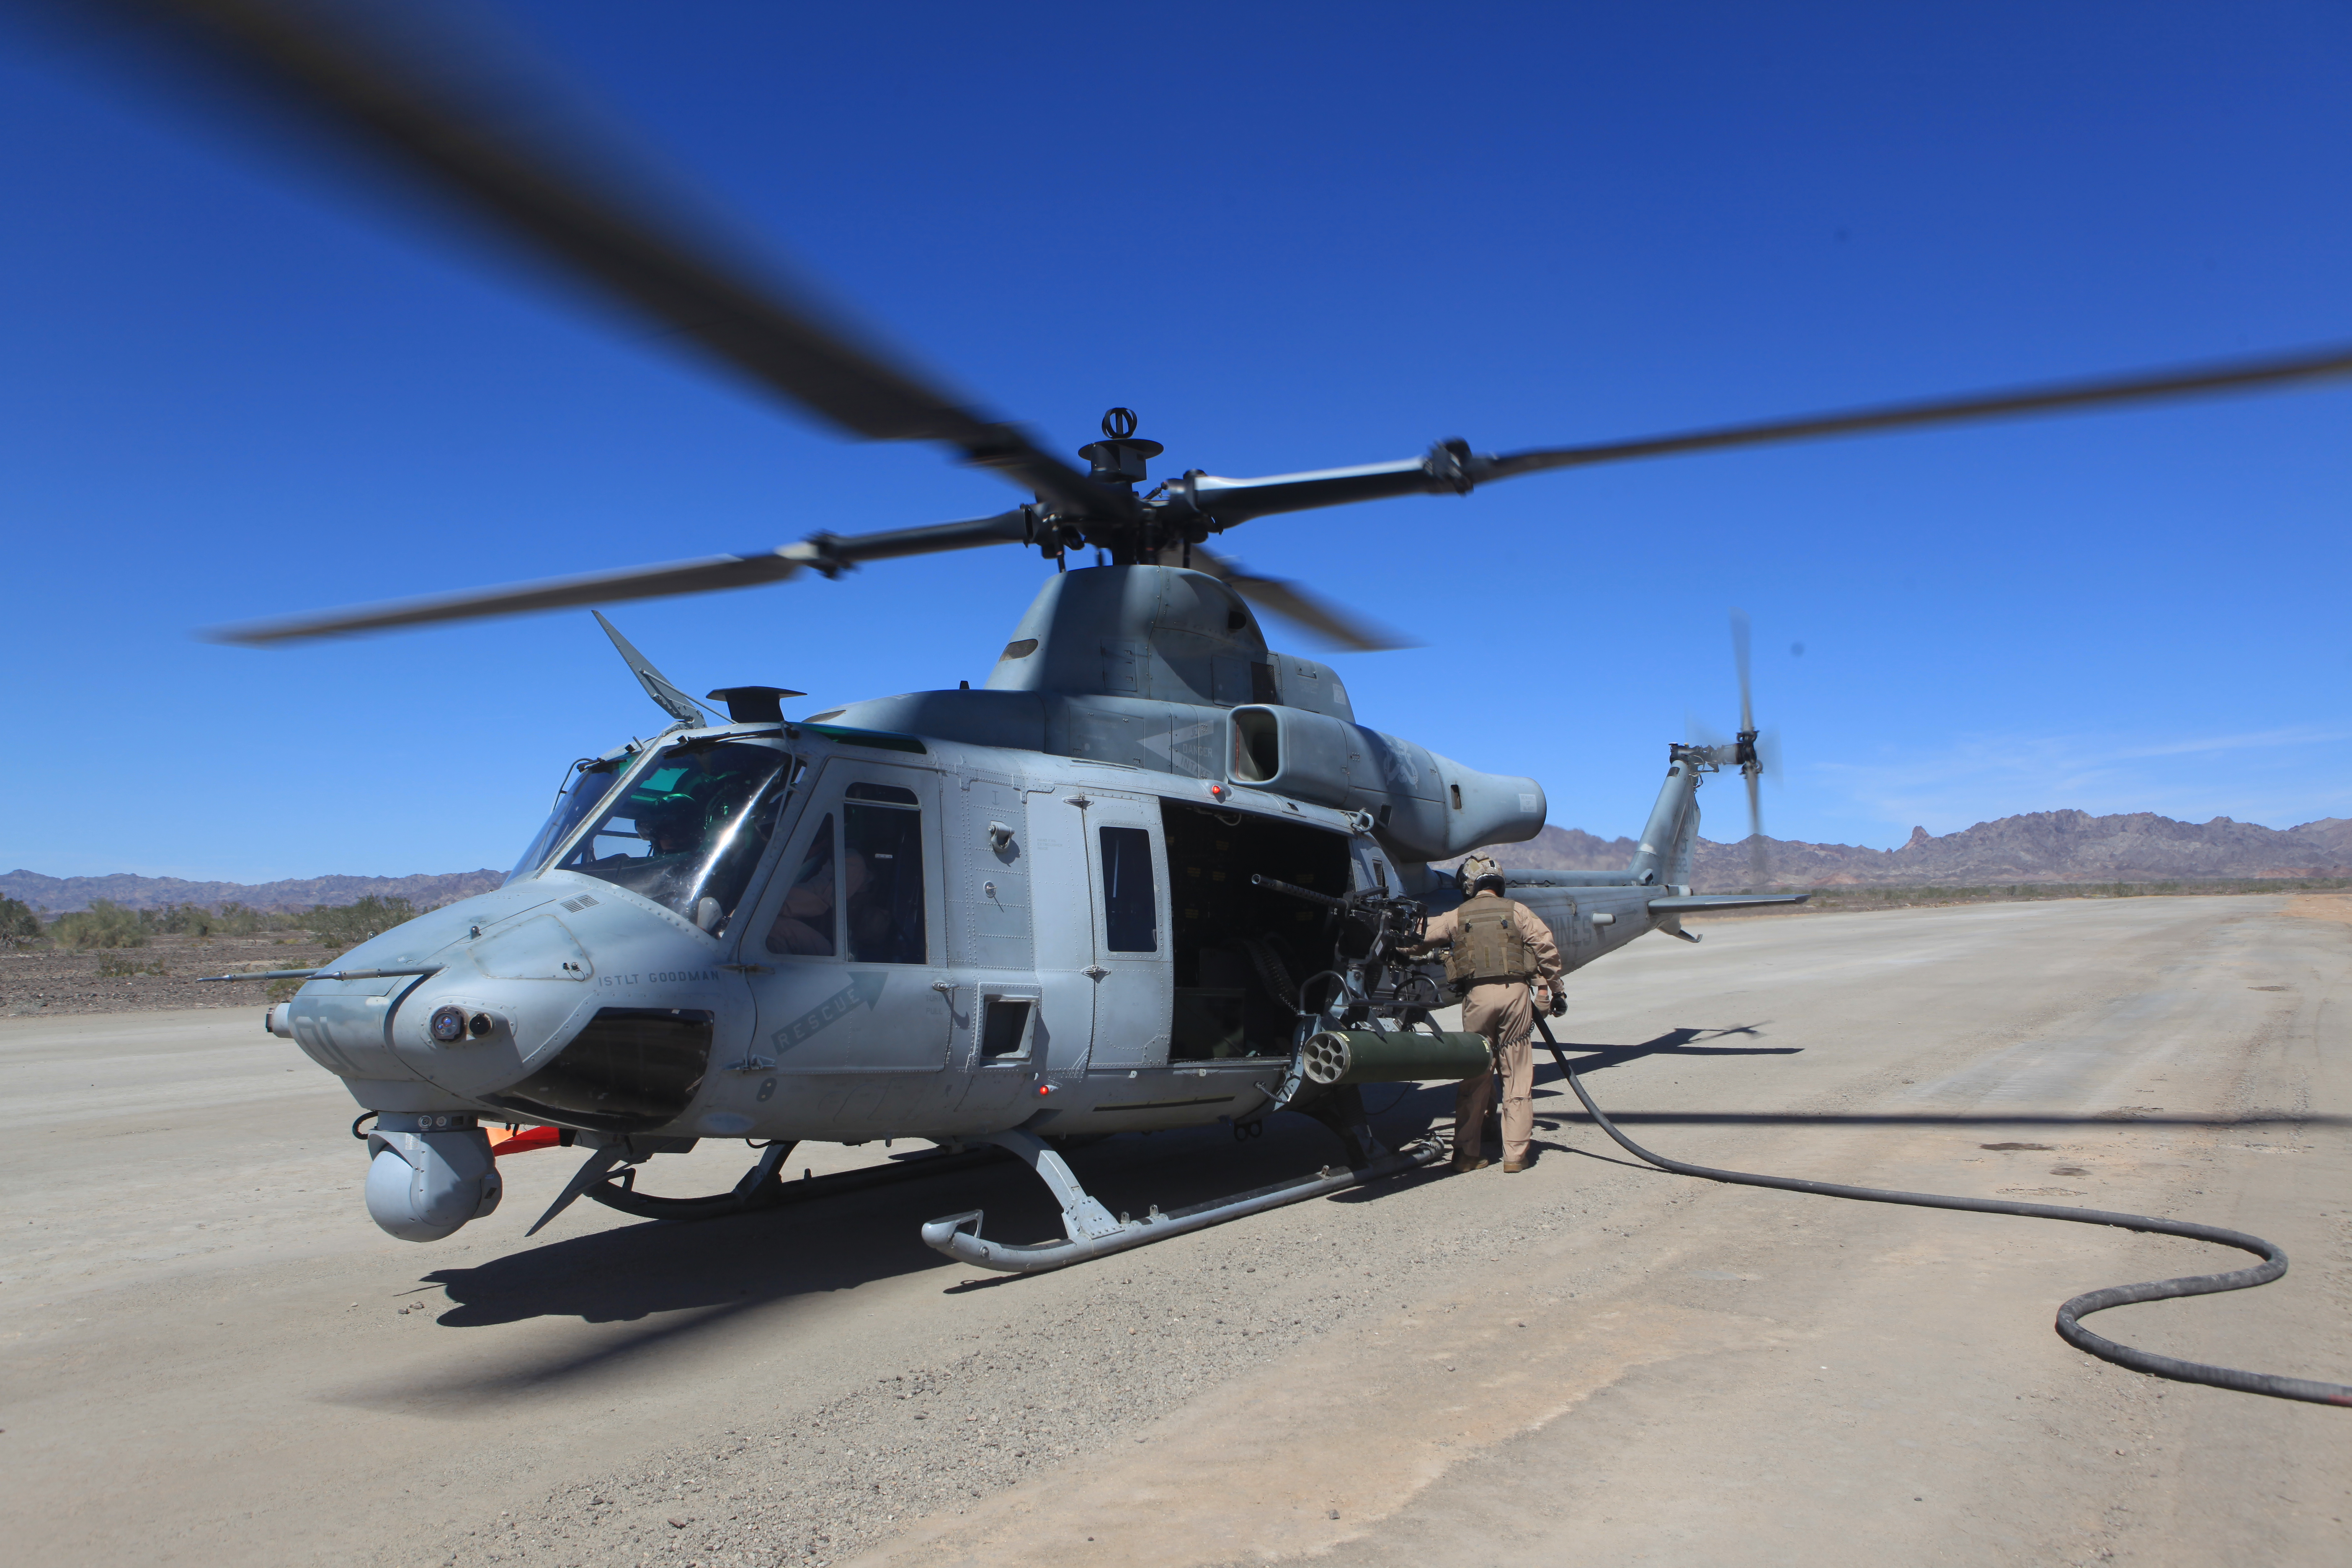 large helicopters with File U  S  Marine Corps Uh 1y Venom Helicopter With Marine Heavy Helicopter Squadron  Hmh  466  Marine Aircraft Group 16  3rd Marine Aircraft Wing  Refuels During Operation Desert Tantrum In Glamis  Calif   March 14 130314 M Df987 219 on Helics 205 likewise Md Helicopters Md 600 N511VA  Private 34669 large also Citation Mustang Buyers Investors Guide furthermore 62522784 in addition IMG 7430 e3.